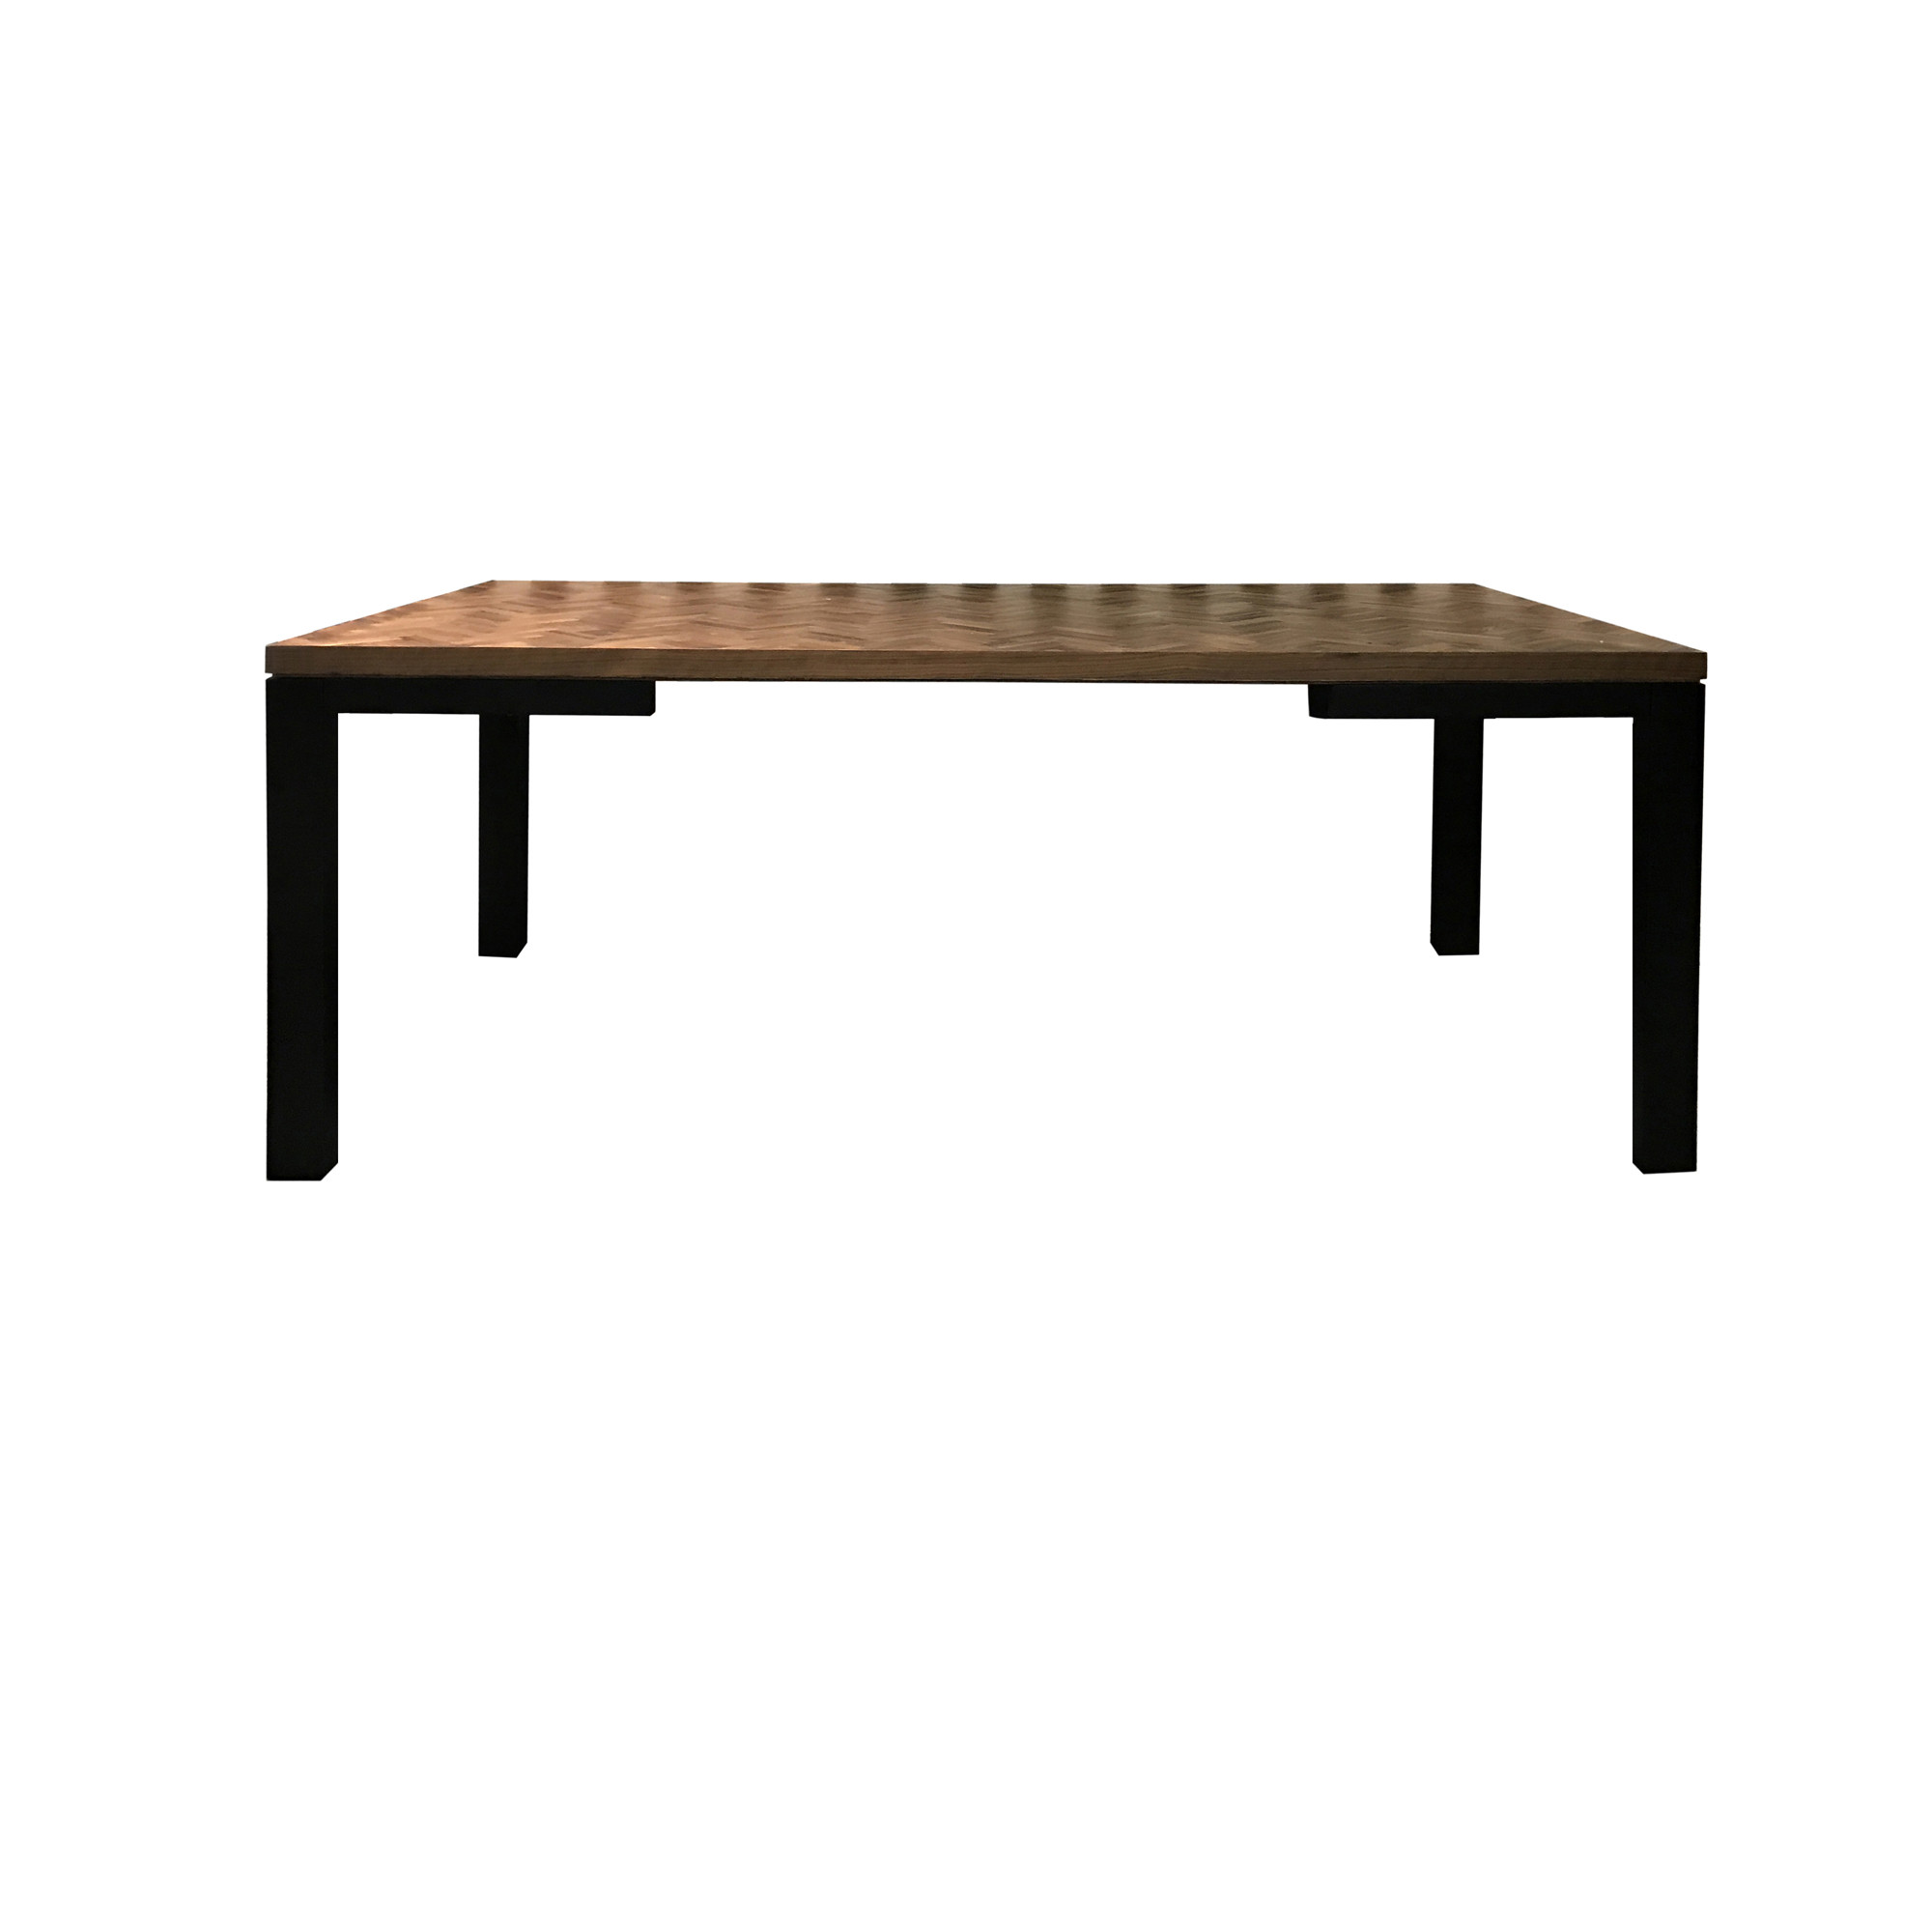 Philos Harmonise Dining Table With Black Legs TD1605 WL Dining Tables